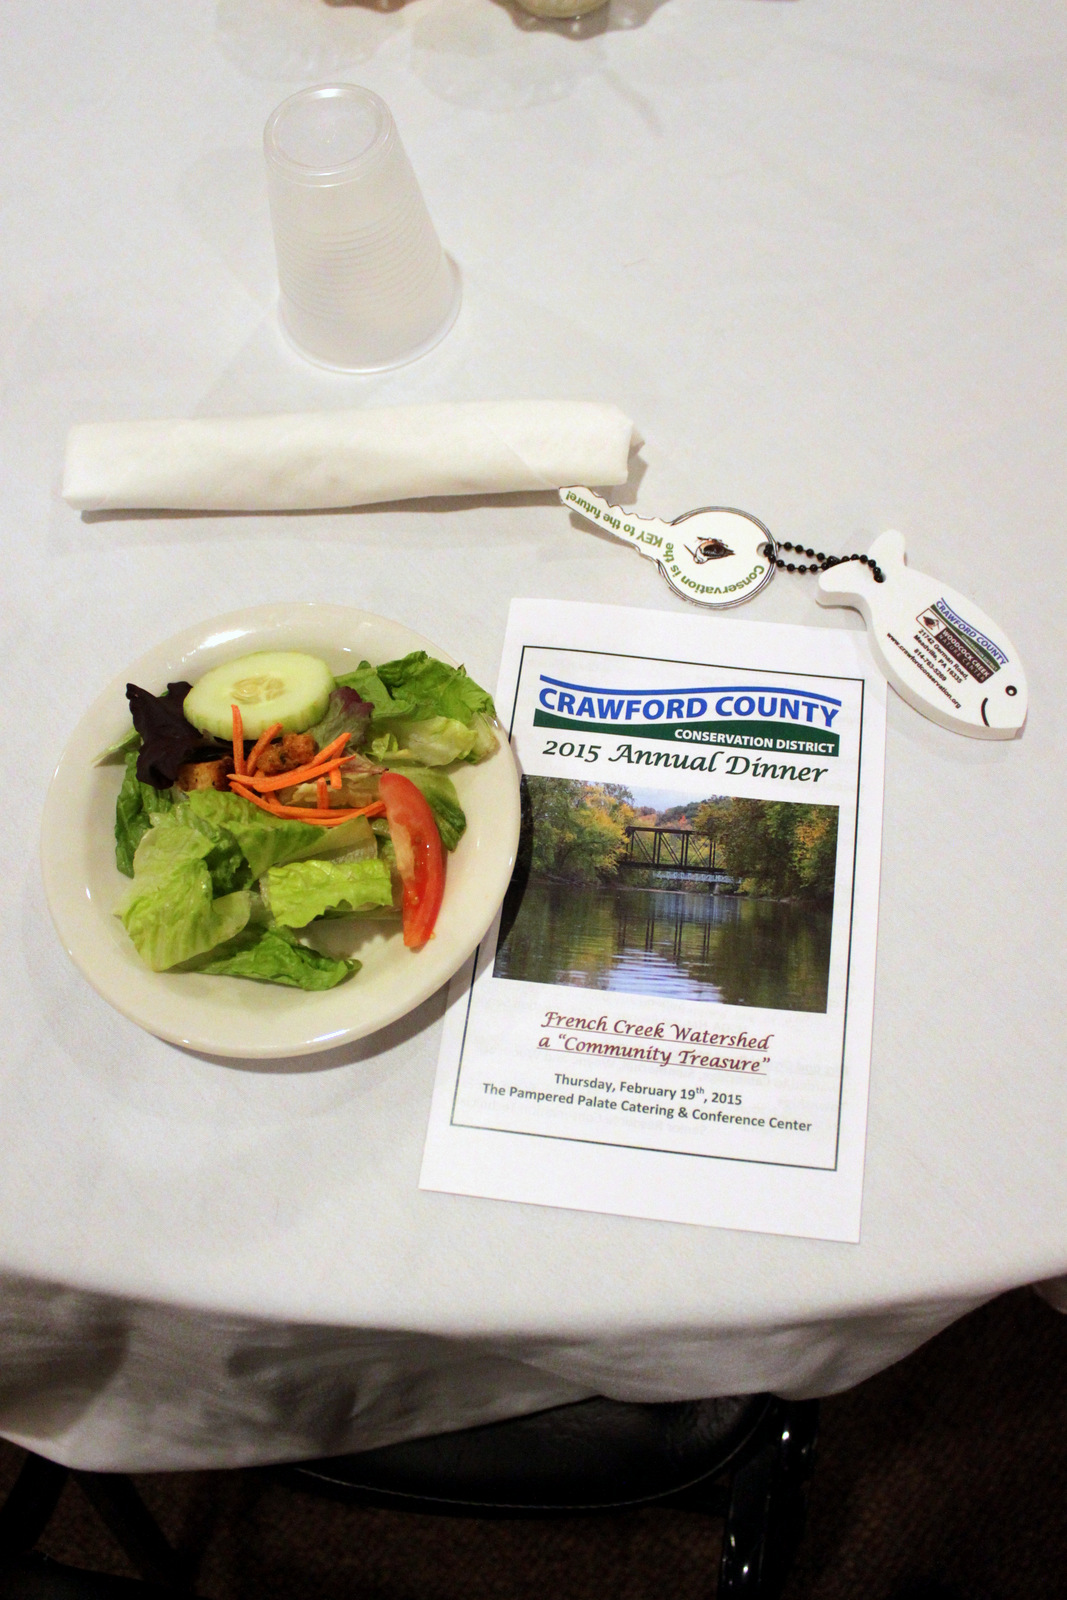 Crawford County Conservation District Annual Dinner